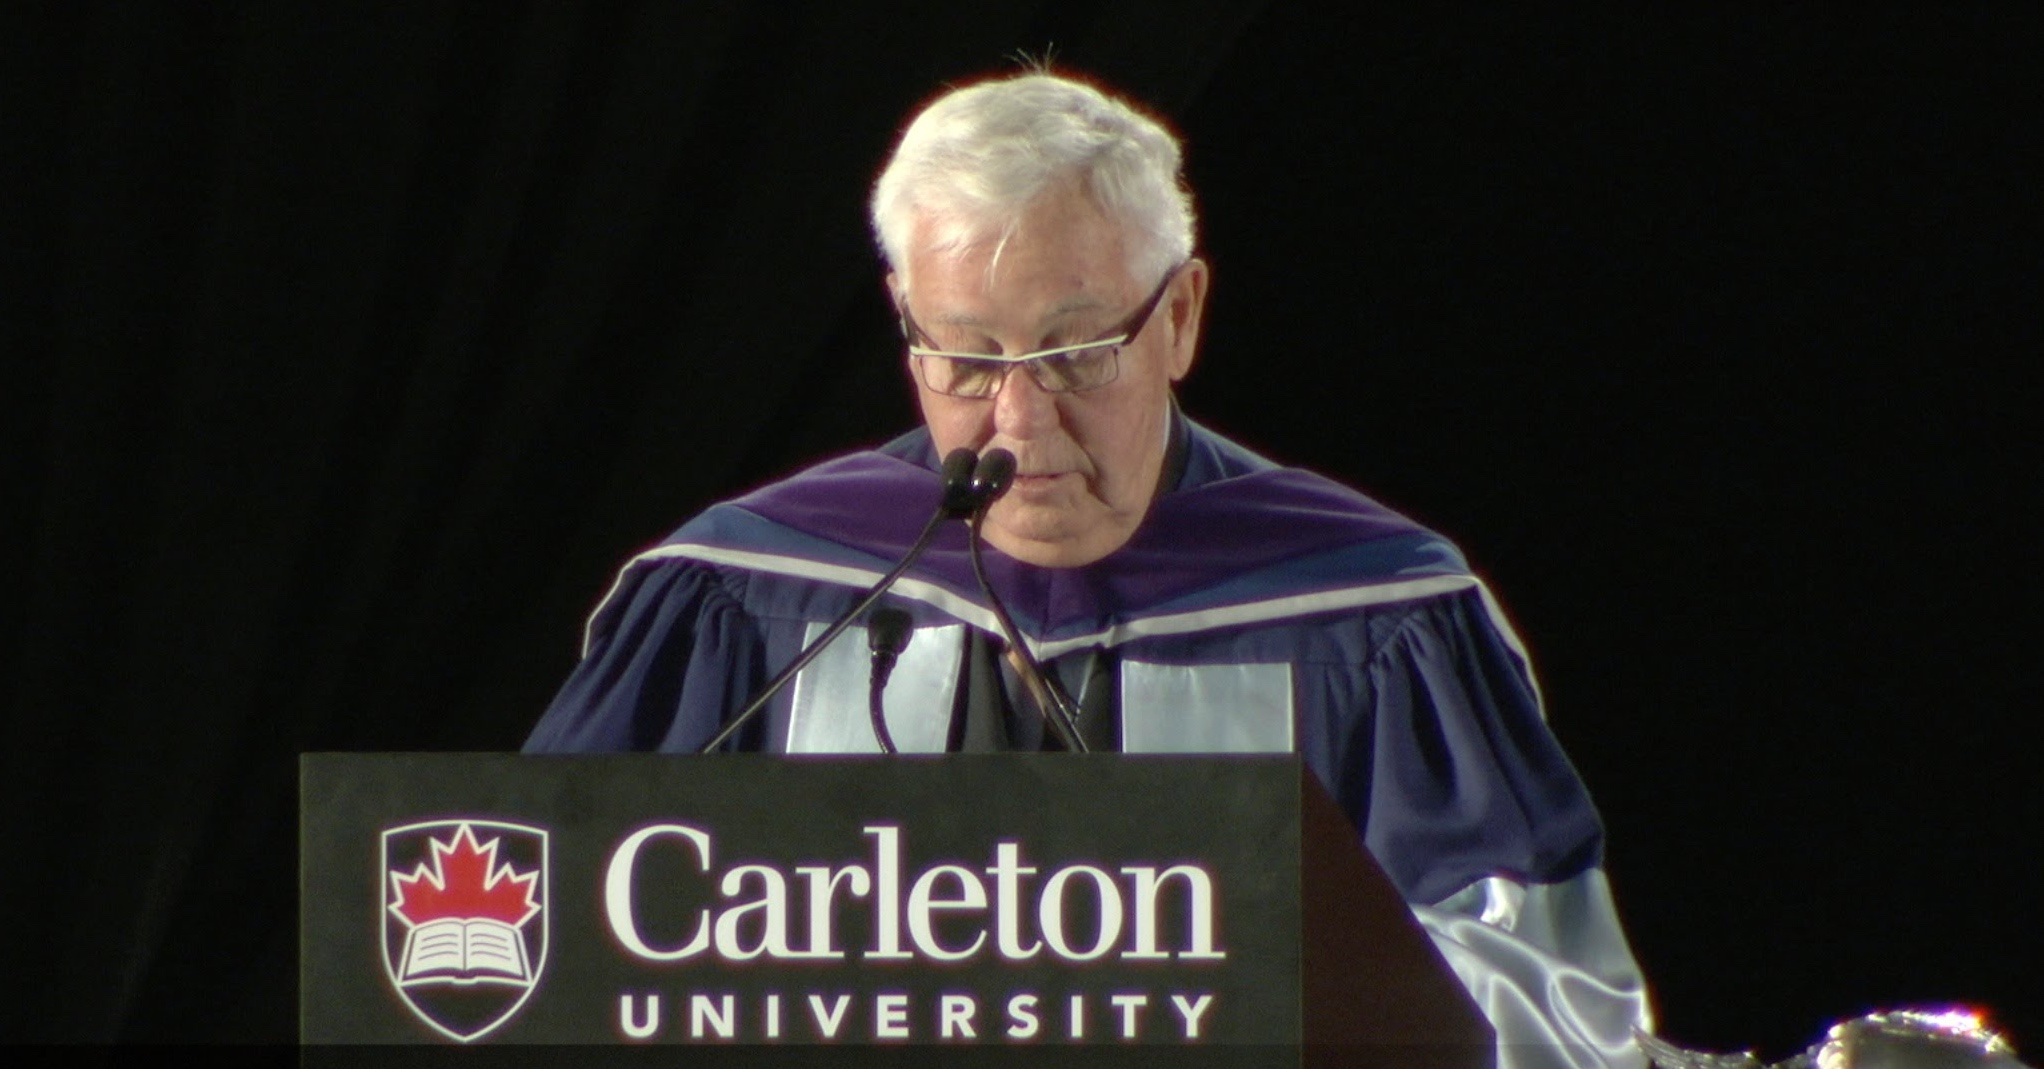 Clayton H. Riddell in 2014, upon received an honorary doctor of laws from Carleton University